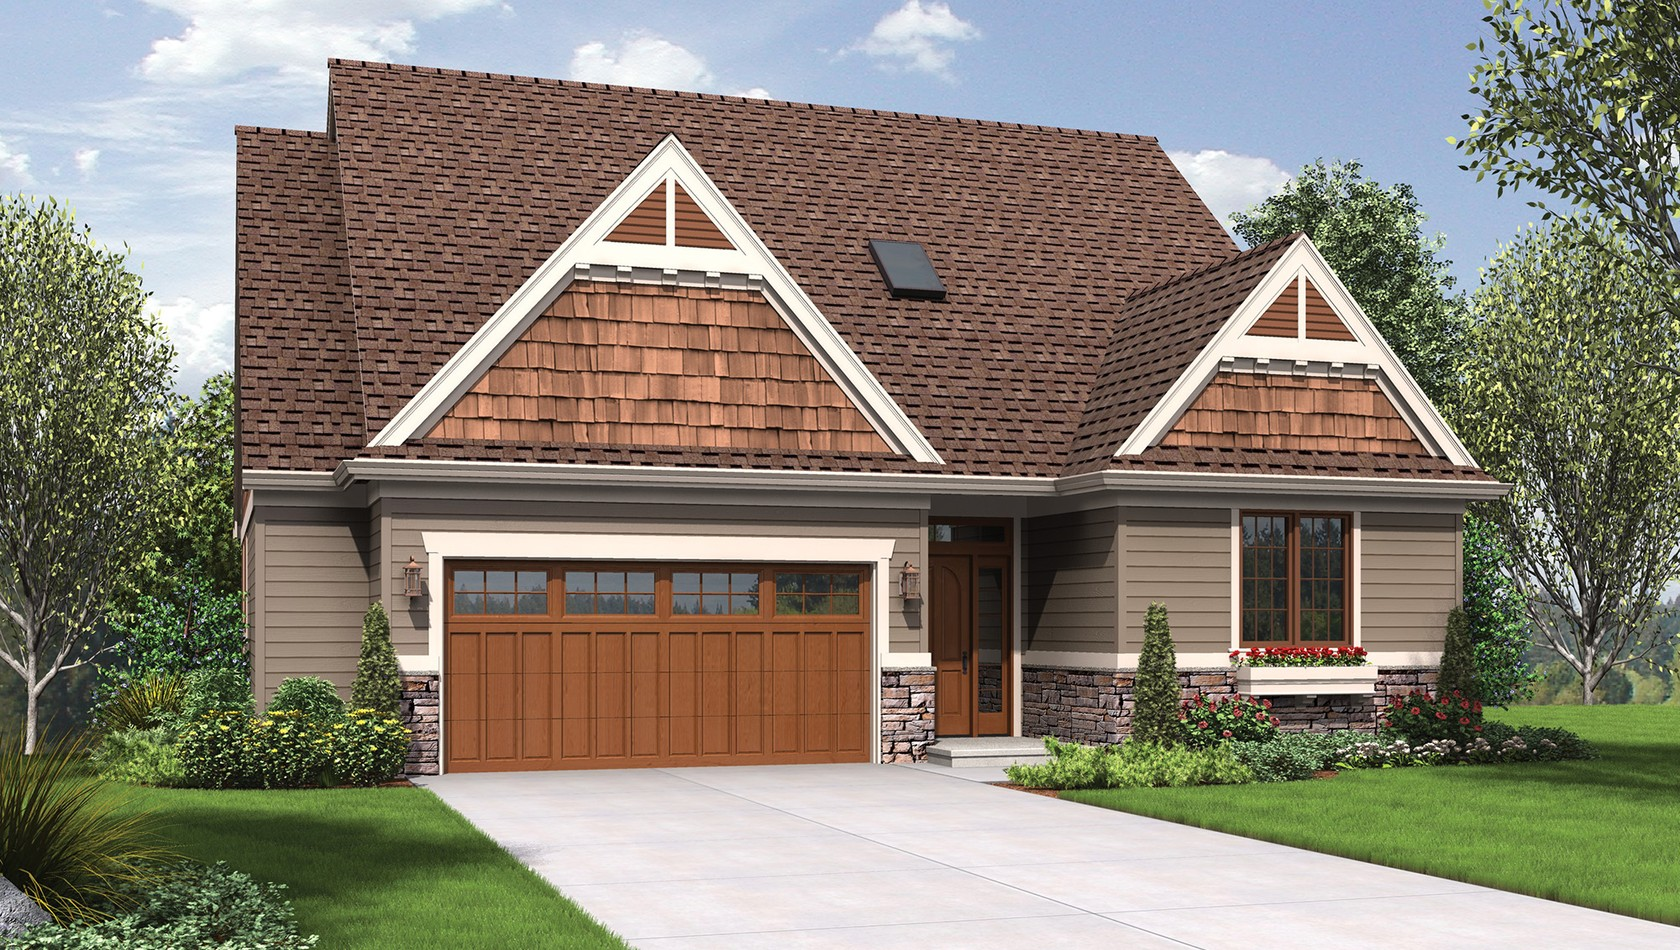 Main image for house plan 1221CC: The Newmarket